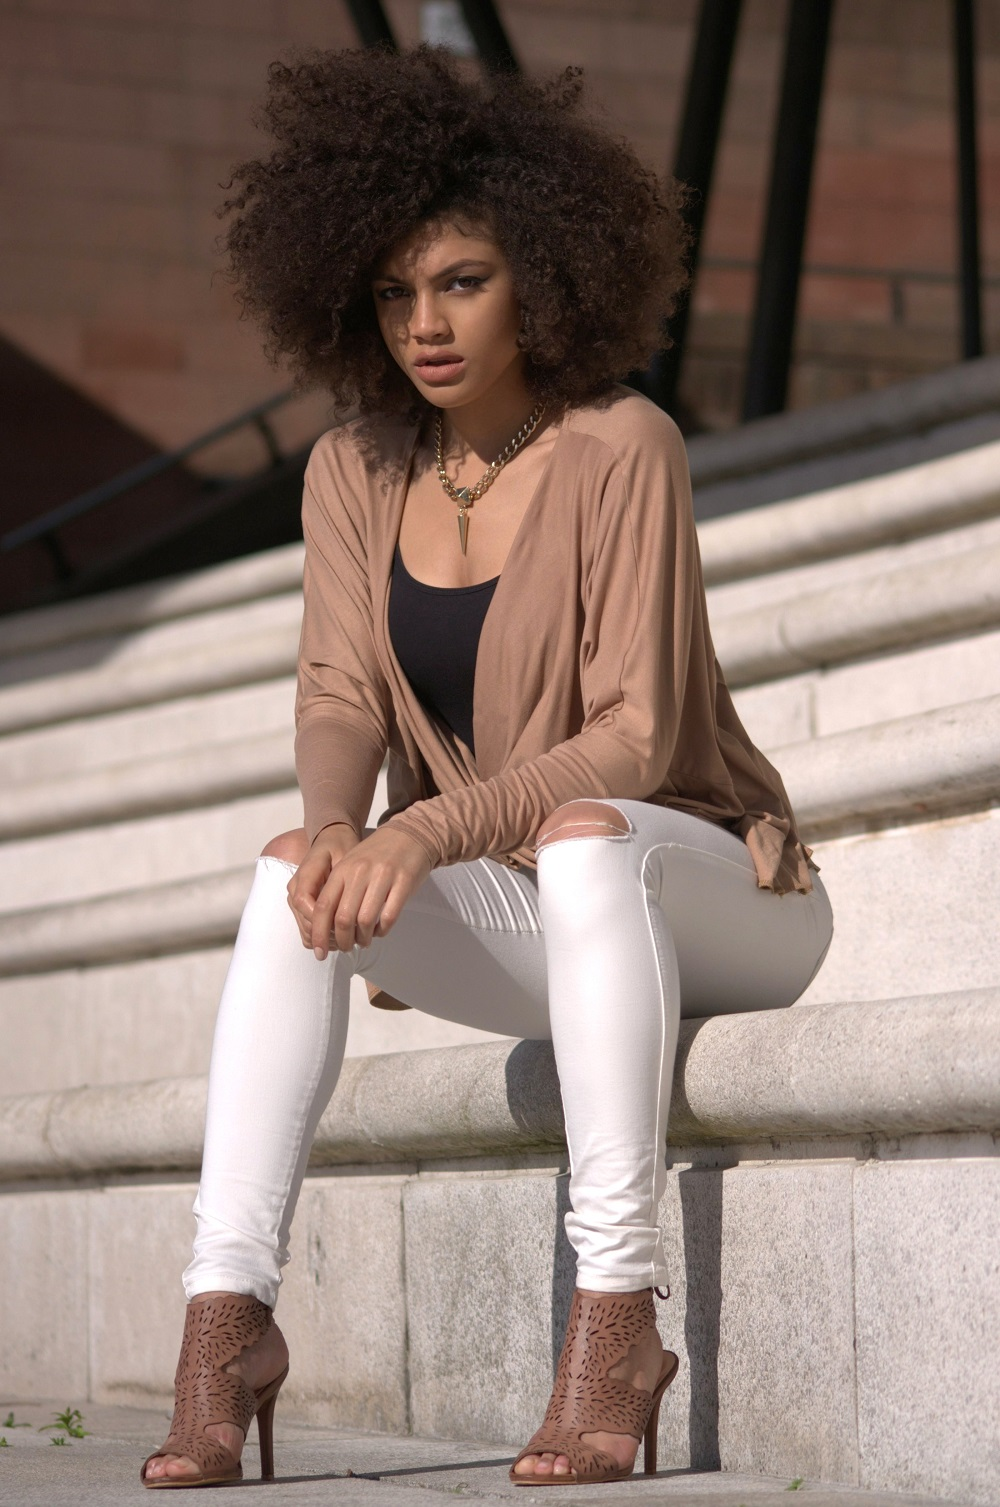 White Ripped Skinny Jeans & The Camel Twist Top